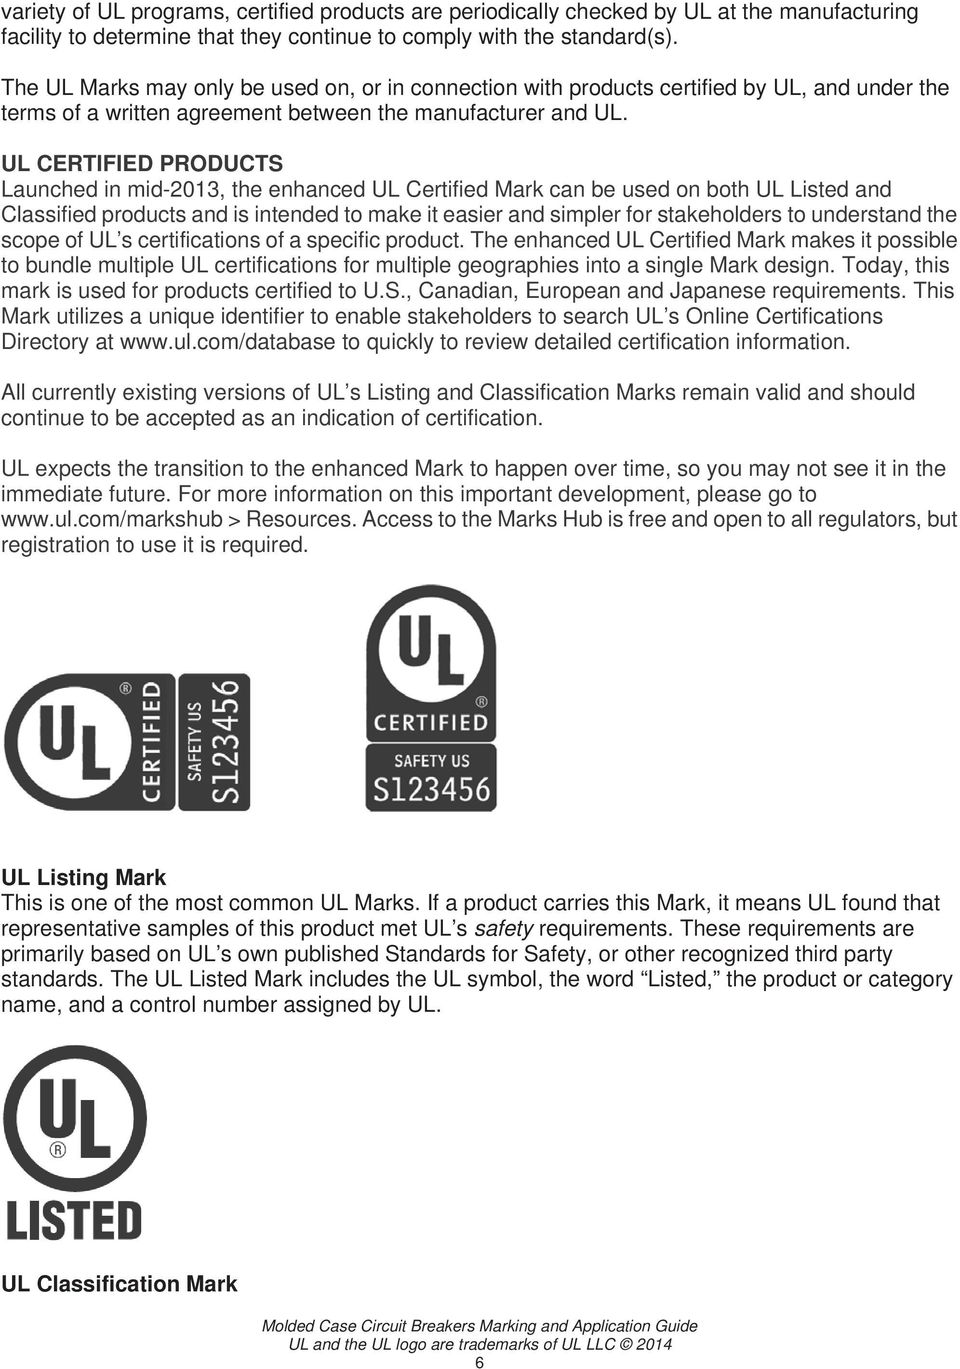 UL CERTIFIED PRODUCTS Launched in mid-2013, the enhanced UL Certified Mark can be used on both UL Listed and Classified products and is intended to make it easier and simpler for stakeholders to